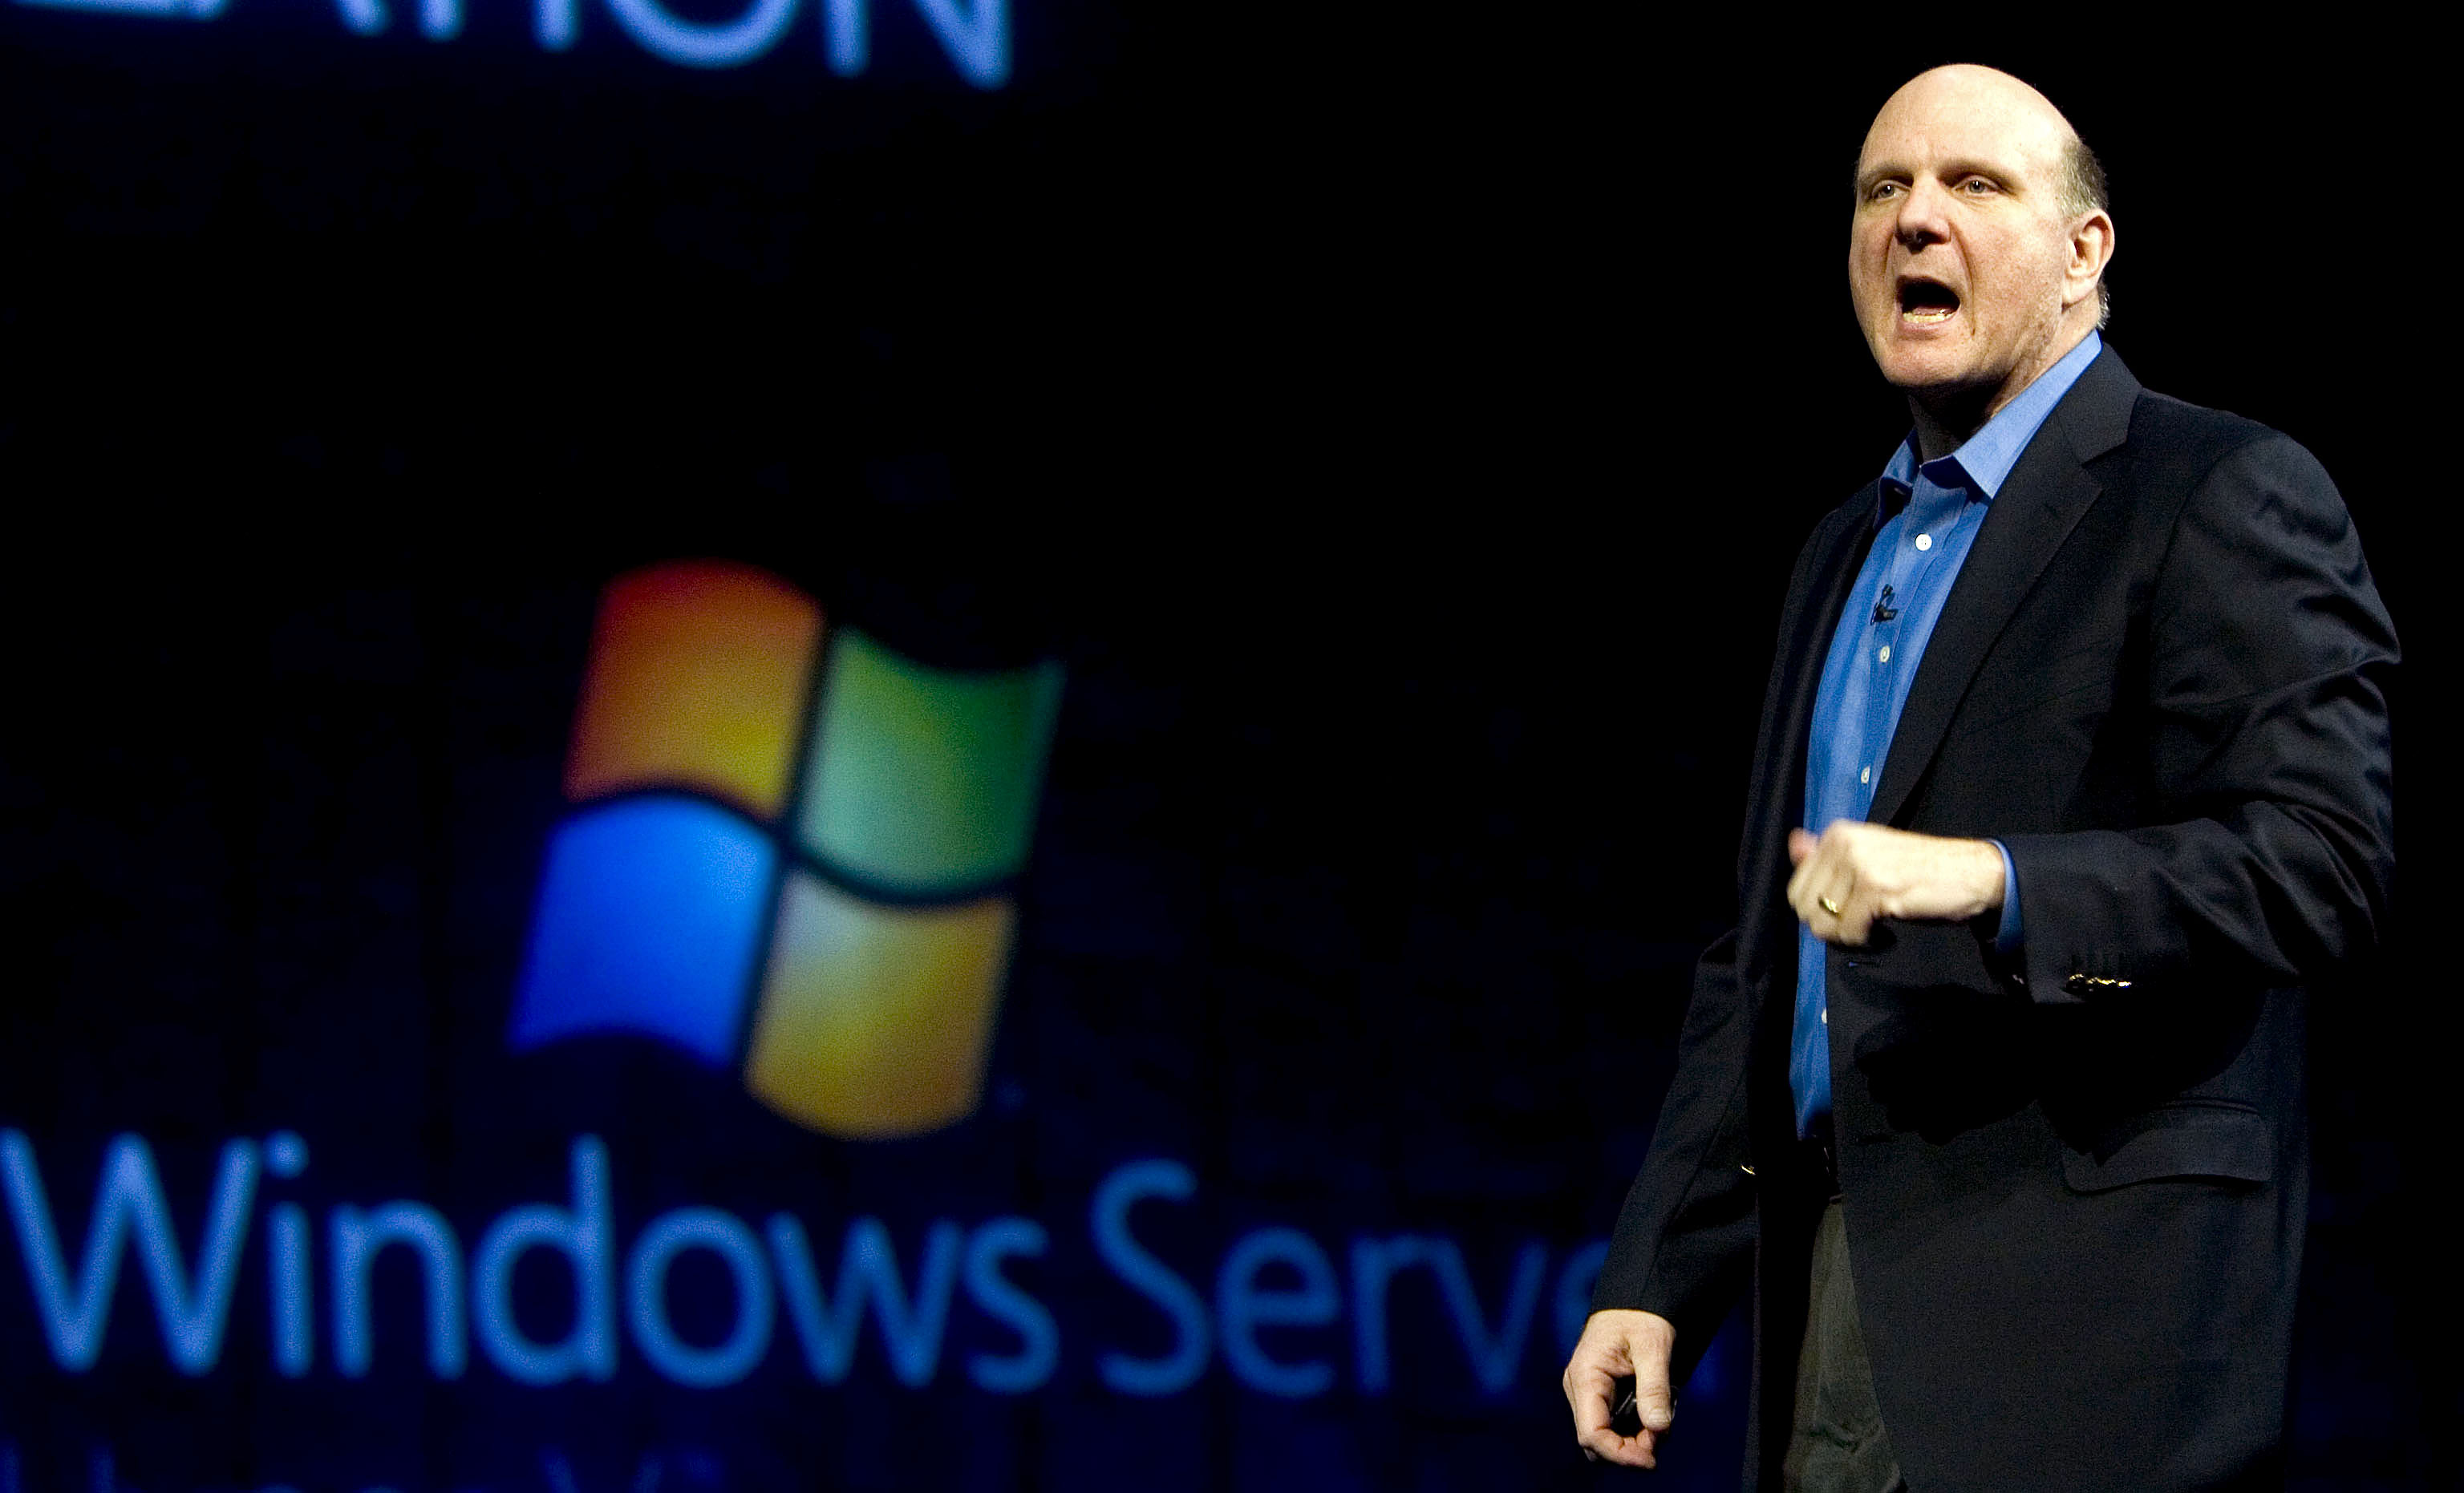 Microsoft Announces Windows Server 2019, Preview Now Available